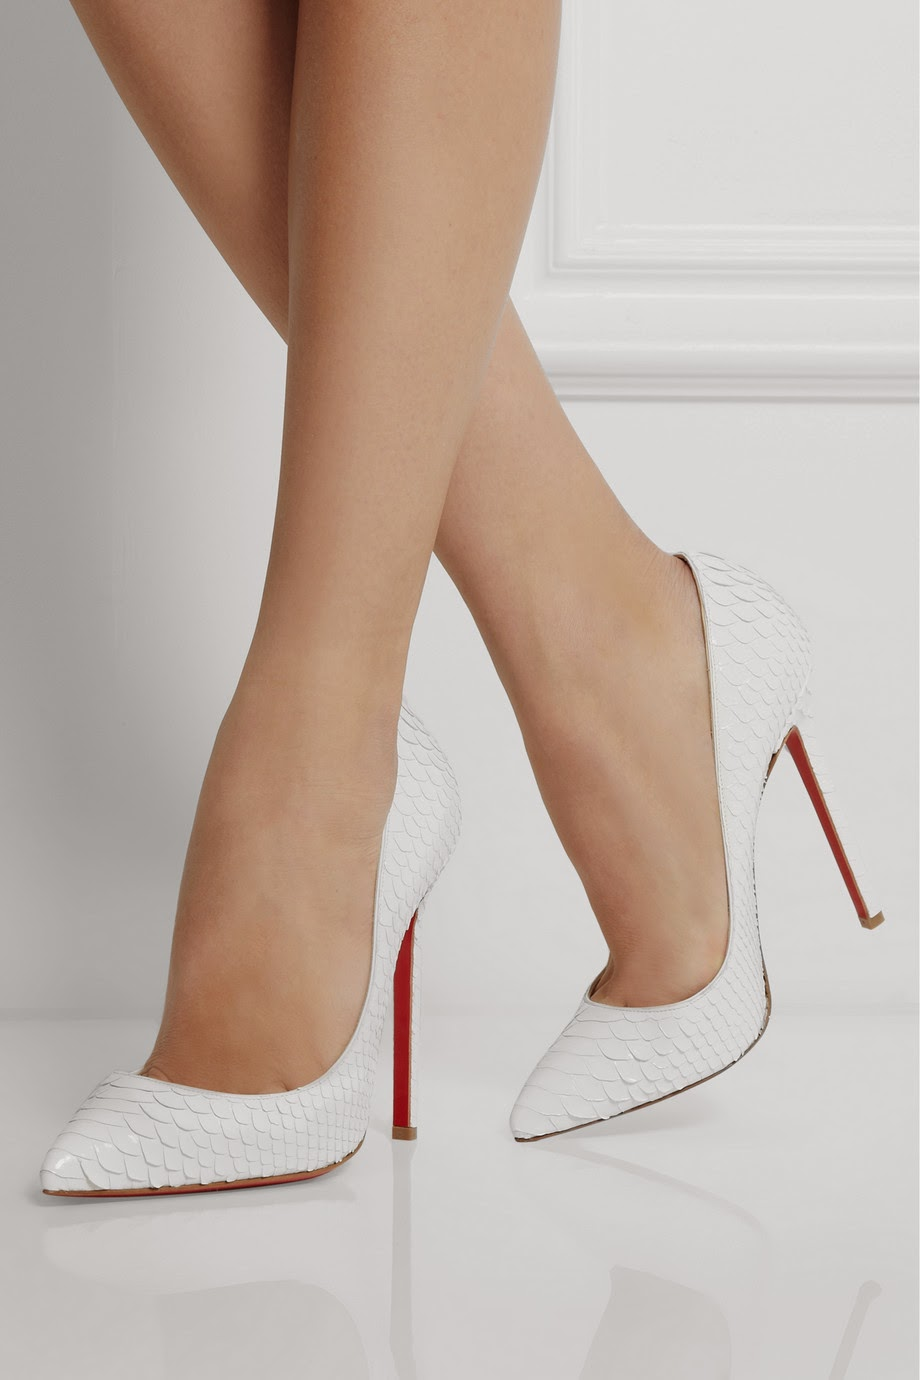 new arrival 7ef79 9ed98 louboutin shoes white